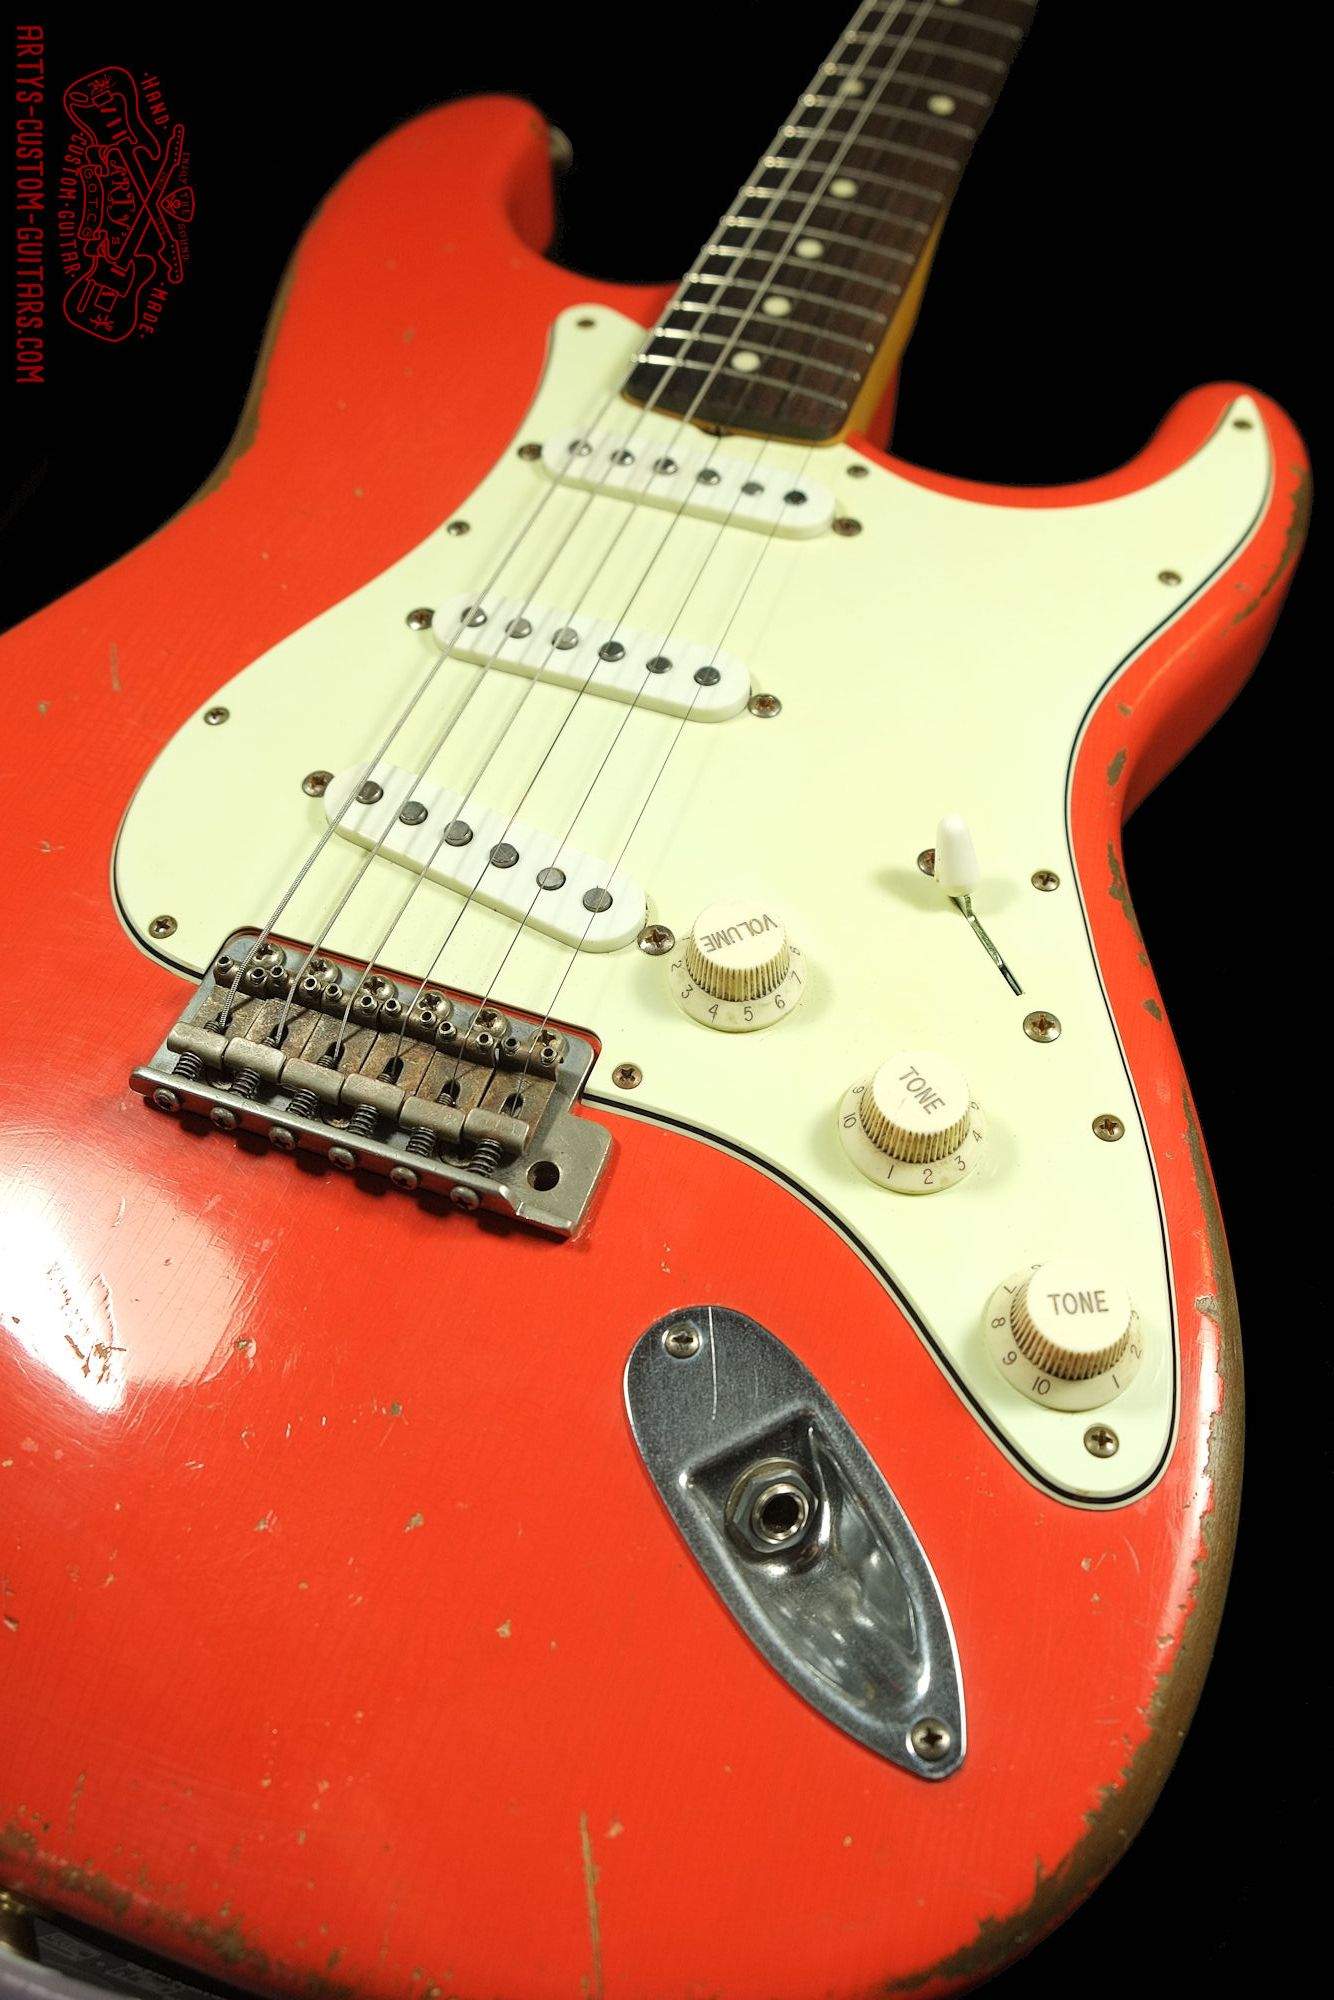 stratocaster 62 heavy relic fiesta red body artys custom guitars